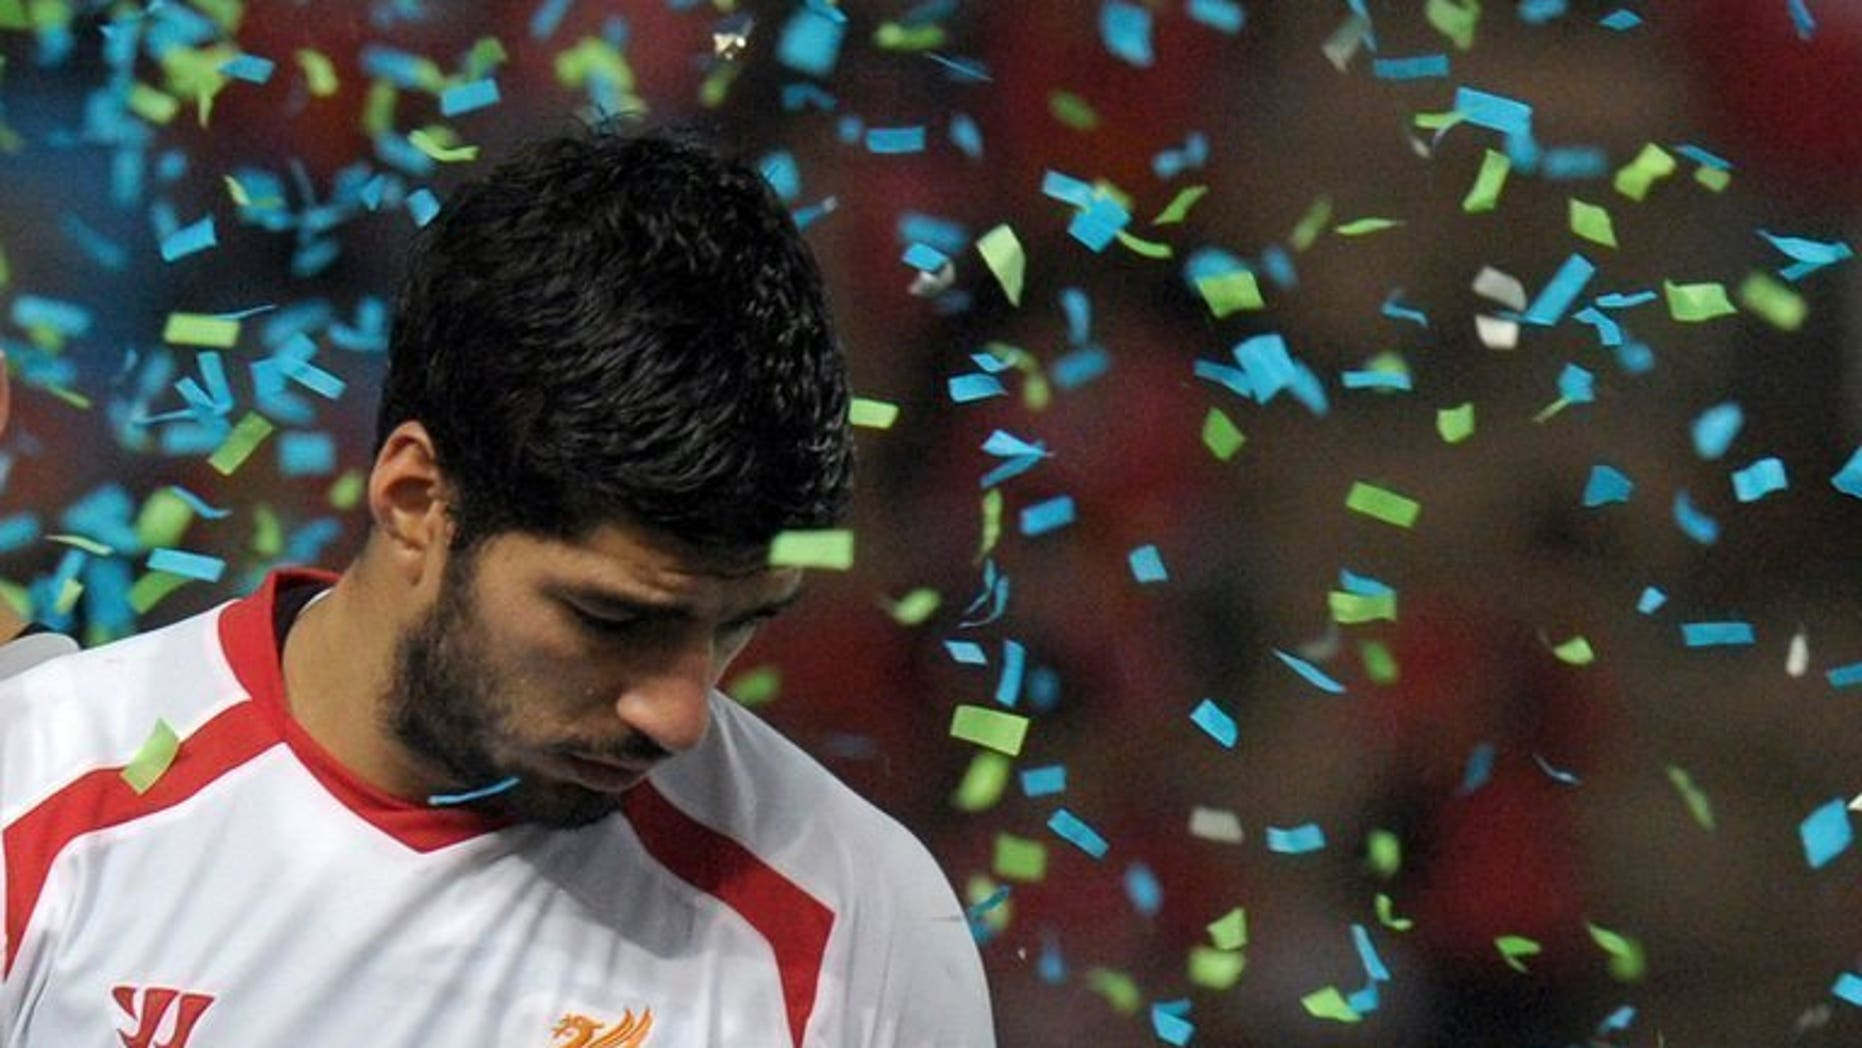 Liverpool's Luis Suarez reacts after the match against Thailand at the Rajamangala National Stadium in Bangkok, on July 28, 2013. Suarez has returned to first-team training, according to British media reports.